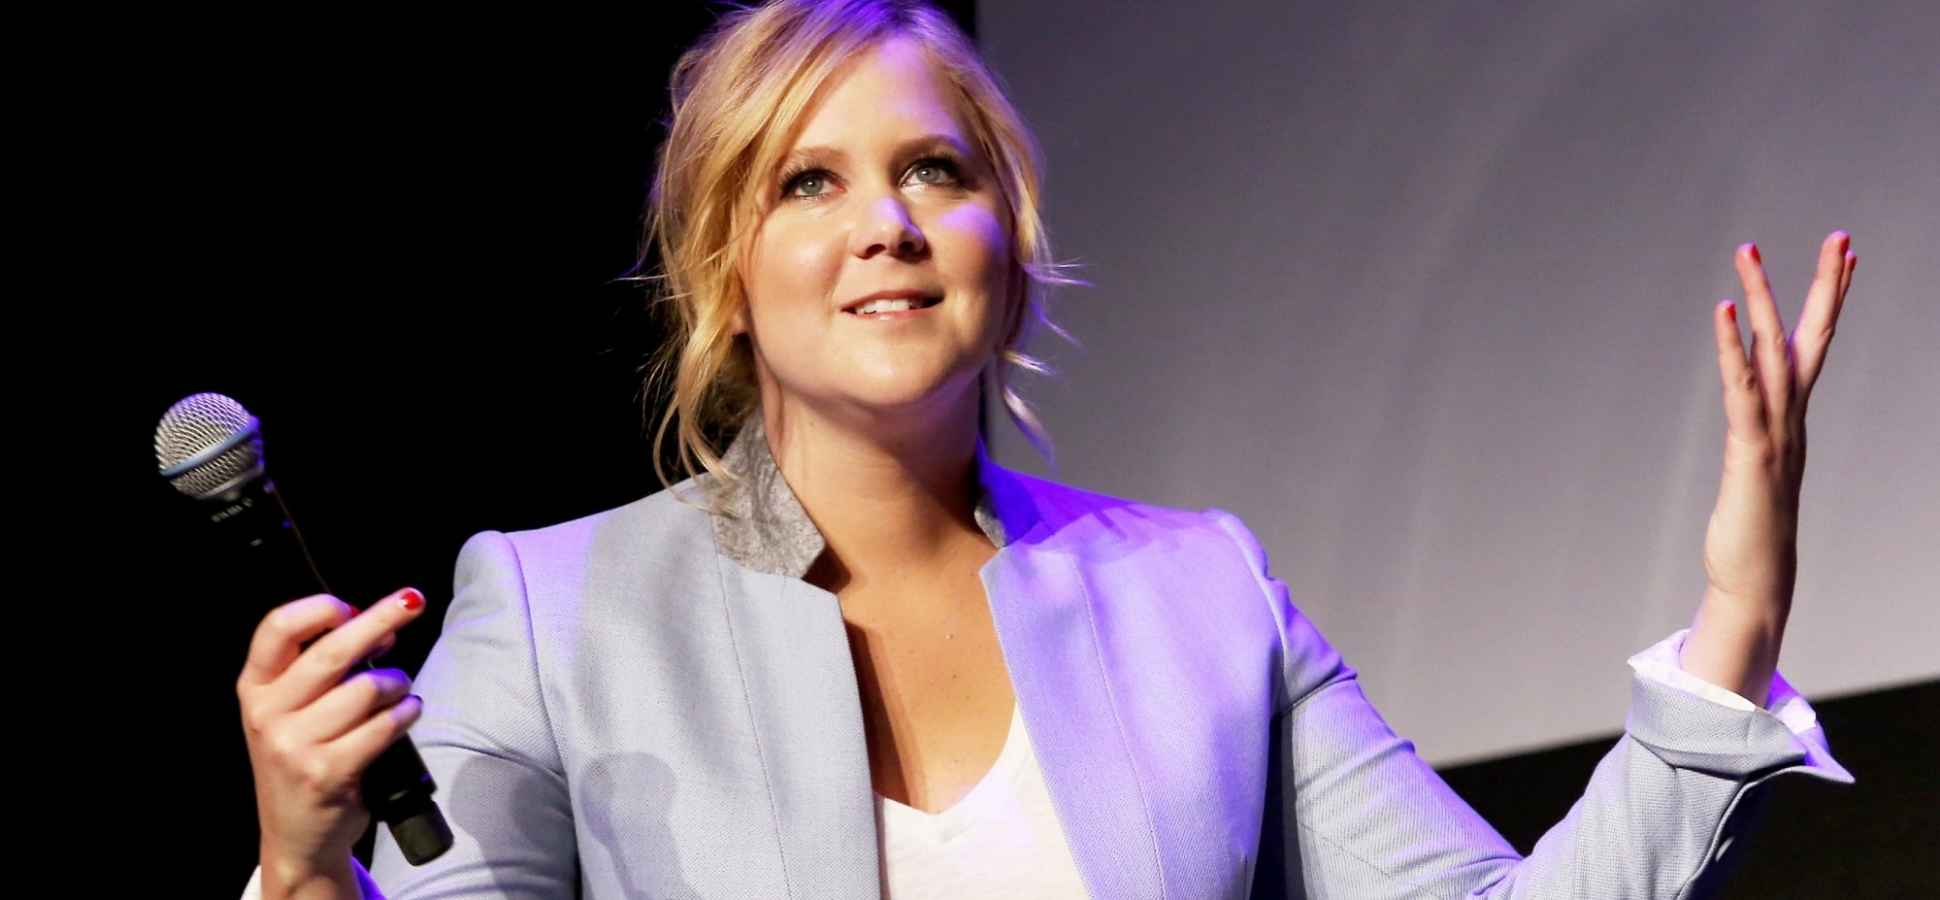 3 Lessons From Amy Schumer for Trailblazing Entrepreneurs